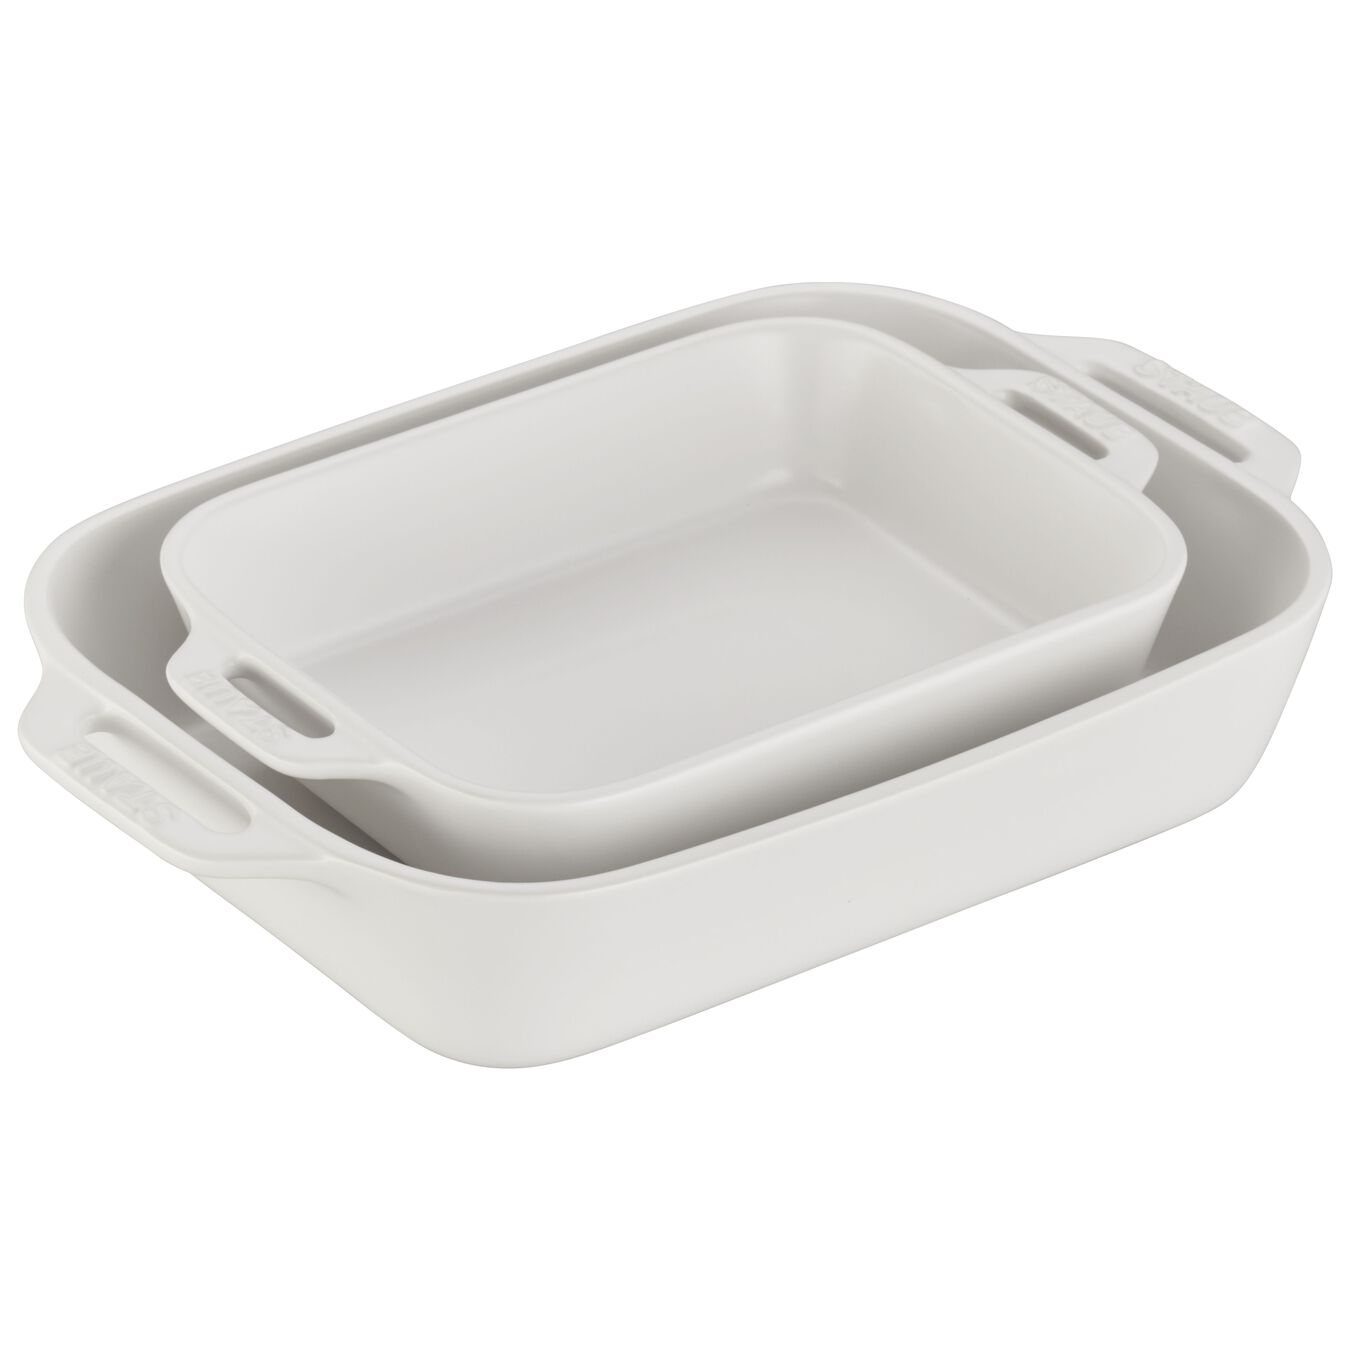 2-pc Rectangular Baking Dish Set - Matte White,,large 1